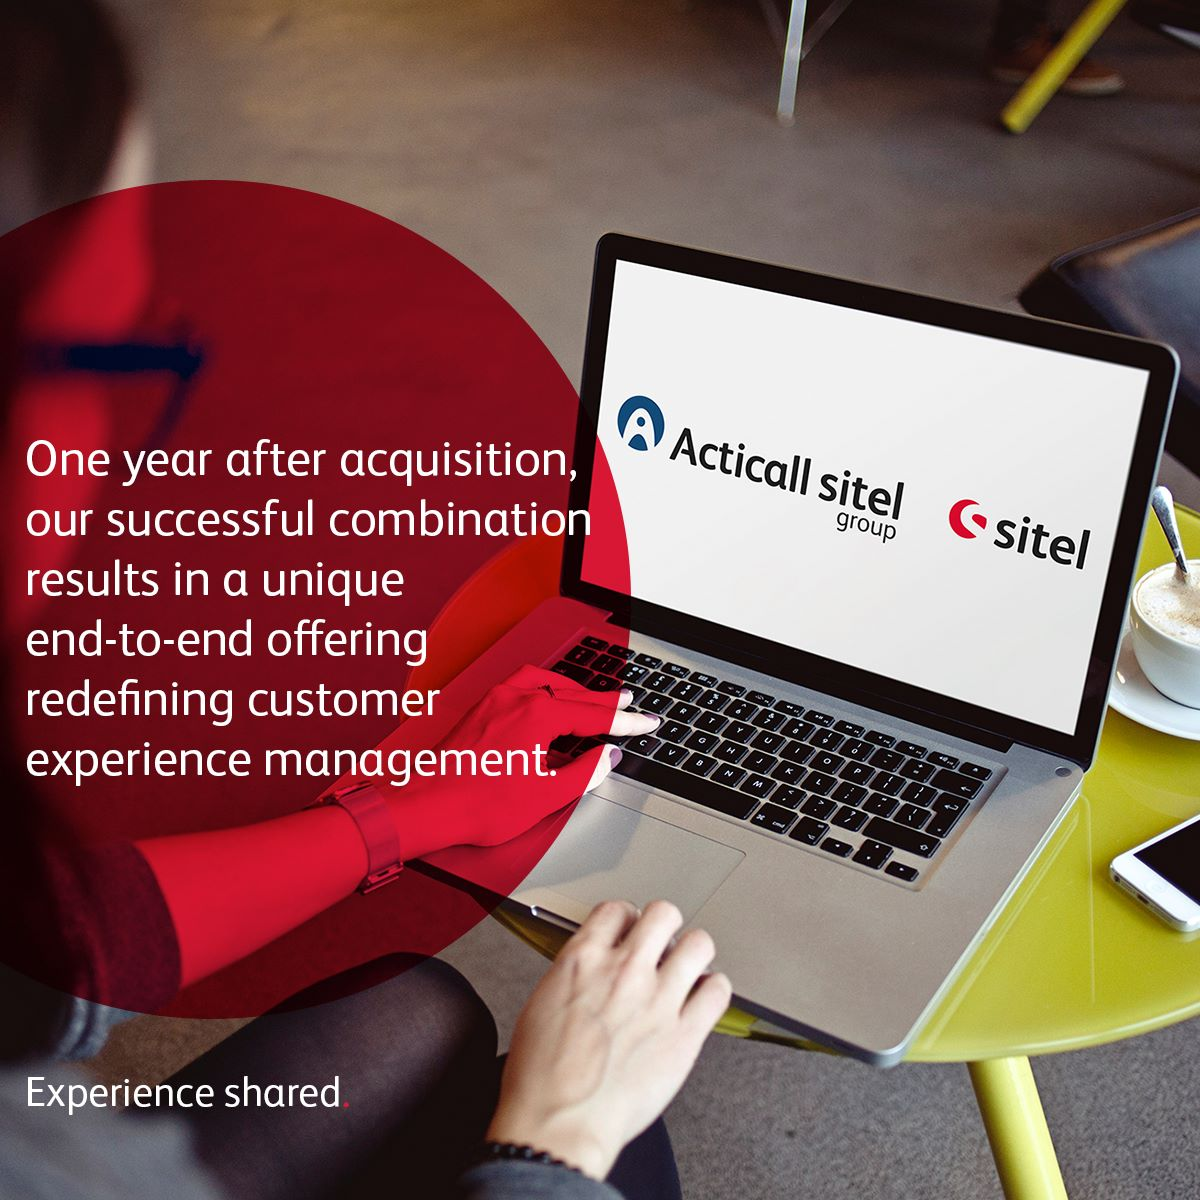 Acticall Sitel Group: a Successful Combination, One Year After Acquisition... Find out why @ https://goo.gl/ceeoYq    #WhySitel